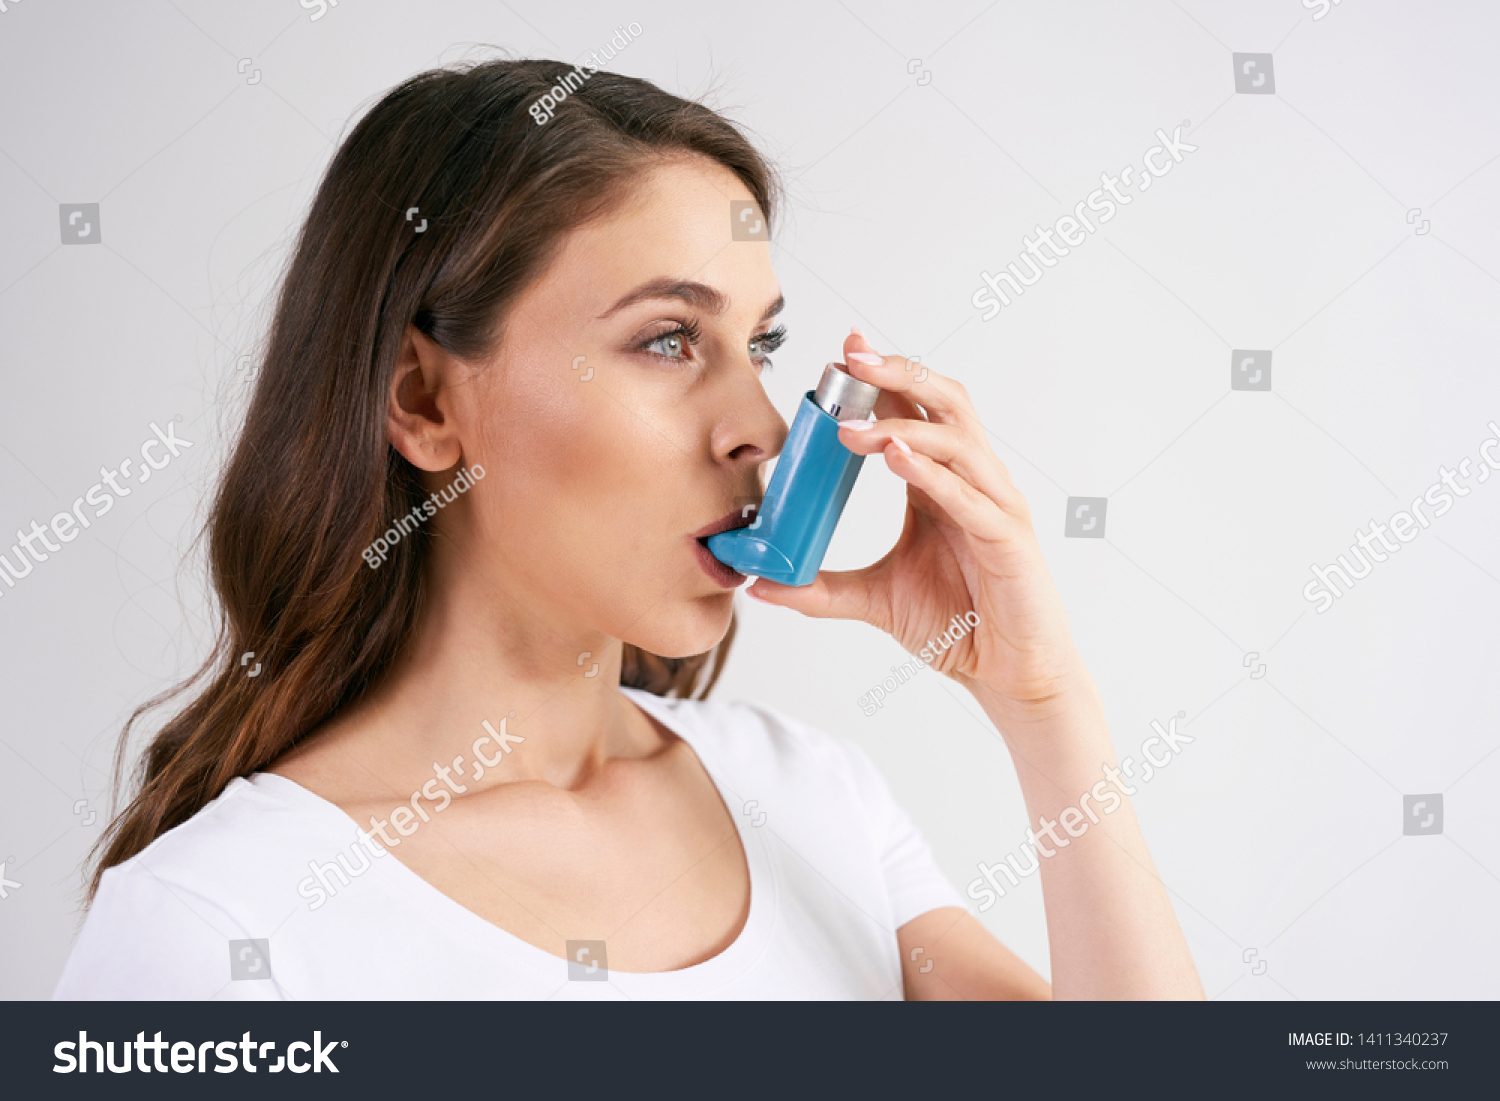 Asthmatic woman using an asthma inhaler during asthma attacks  #1411340237